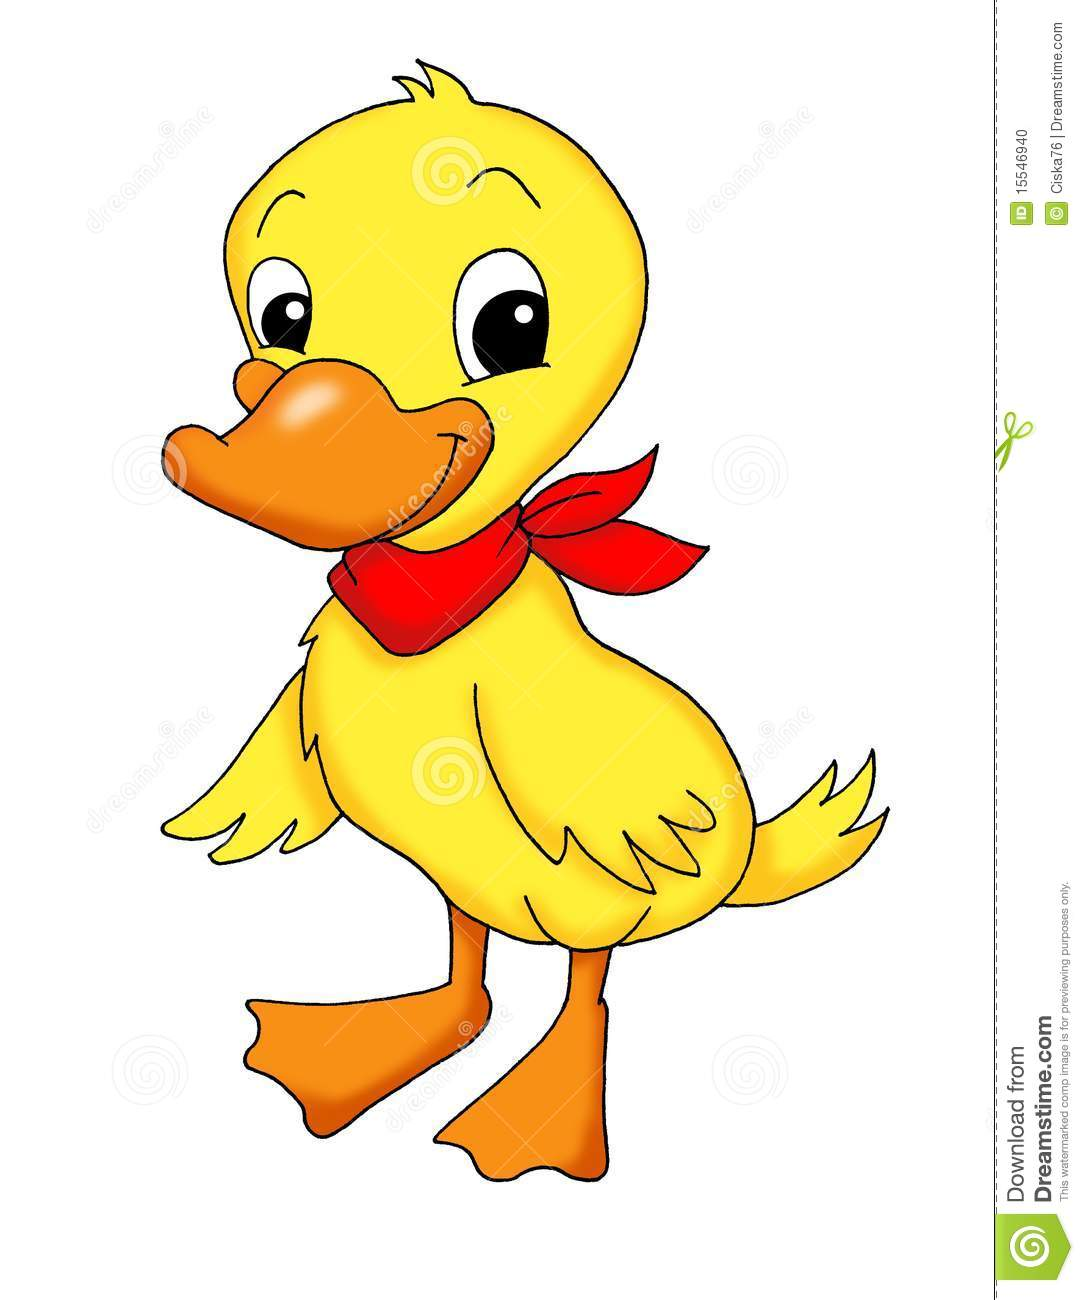 Duckling clipart Cute icon  duck Duckling